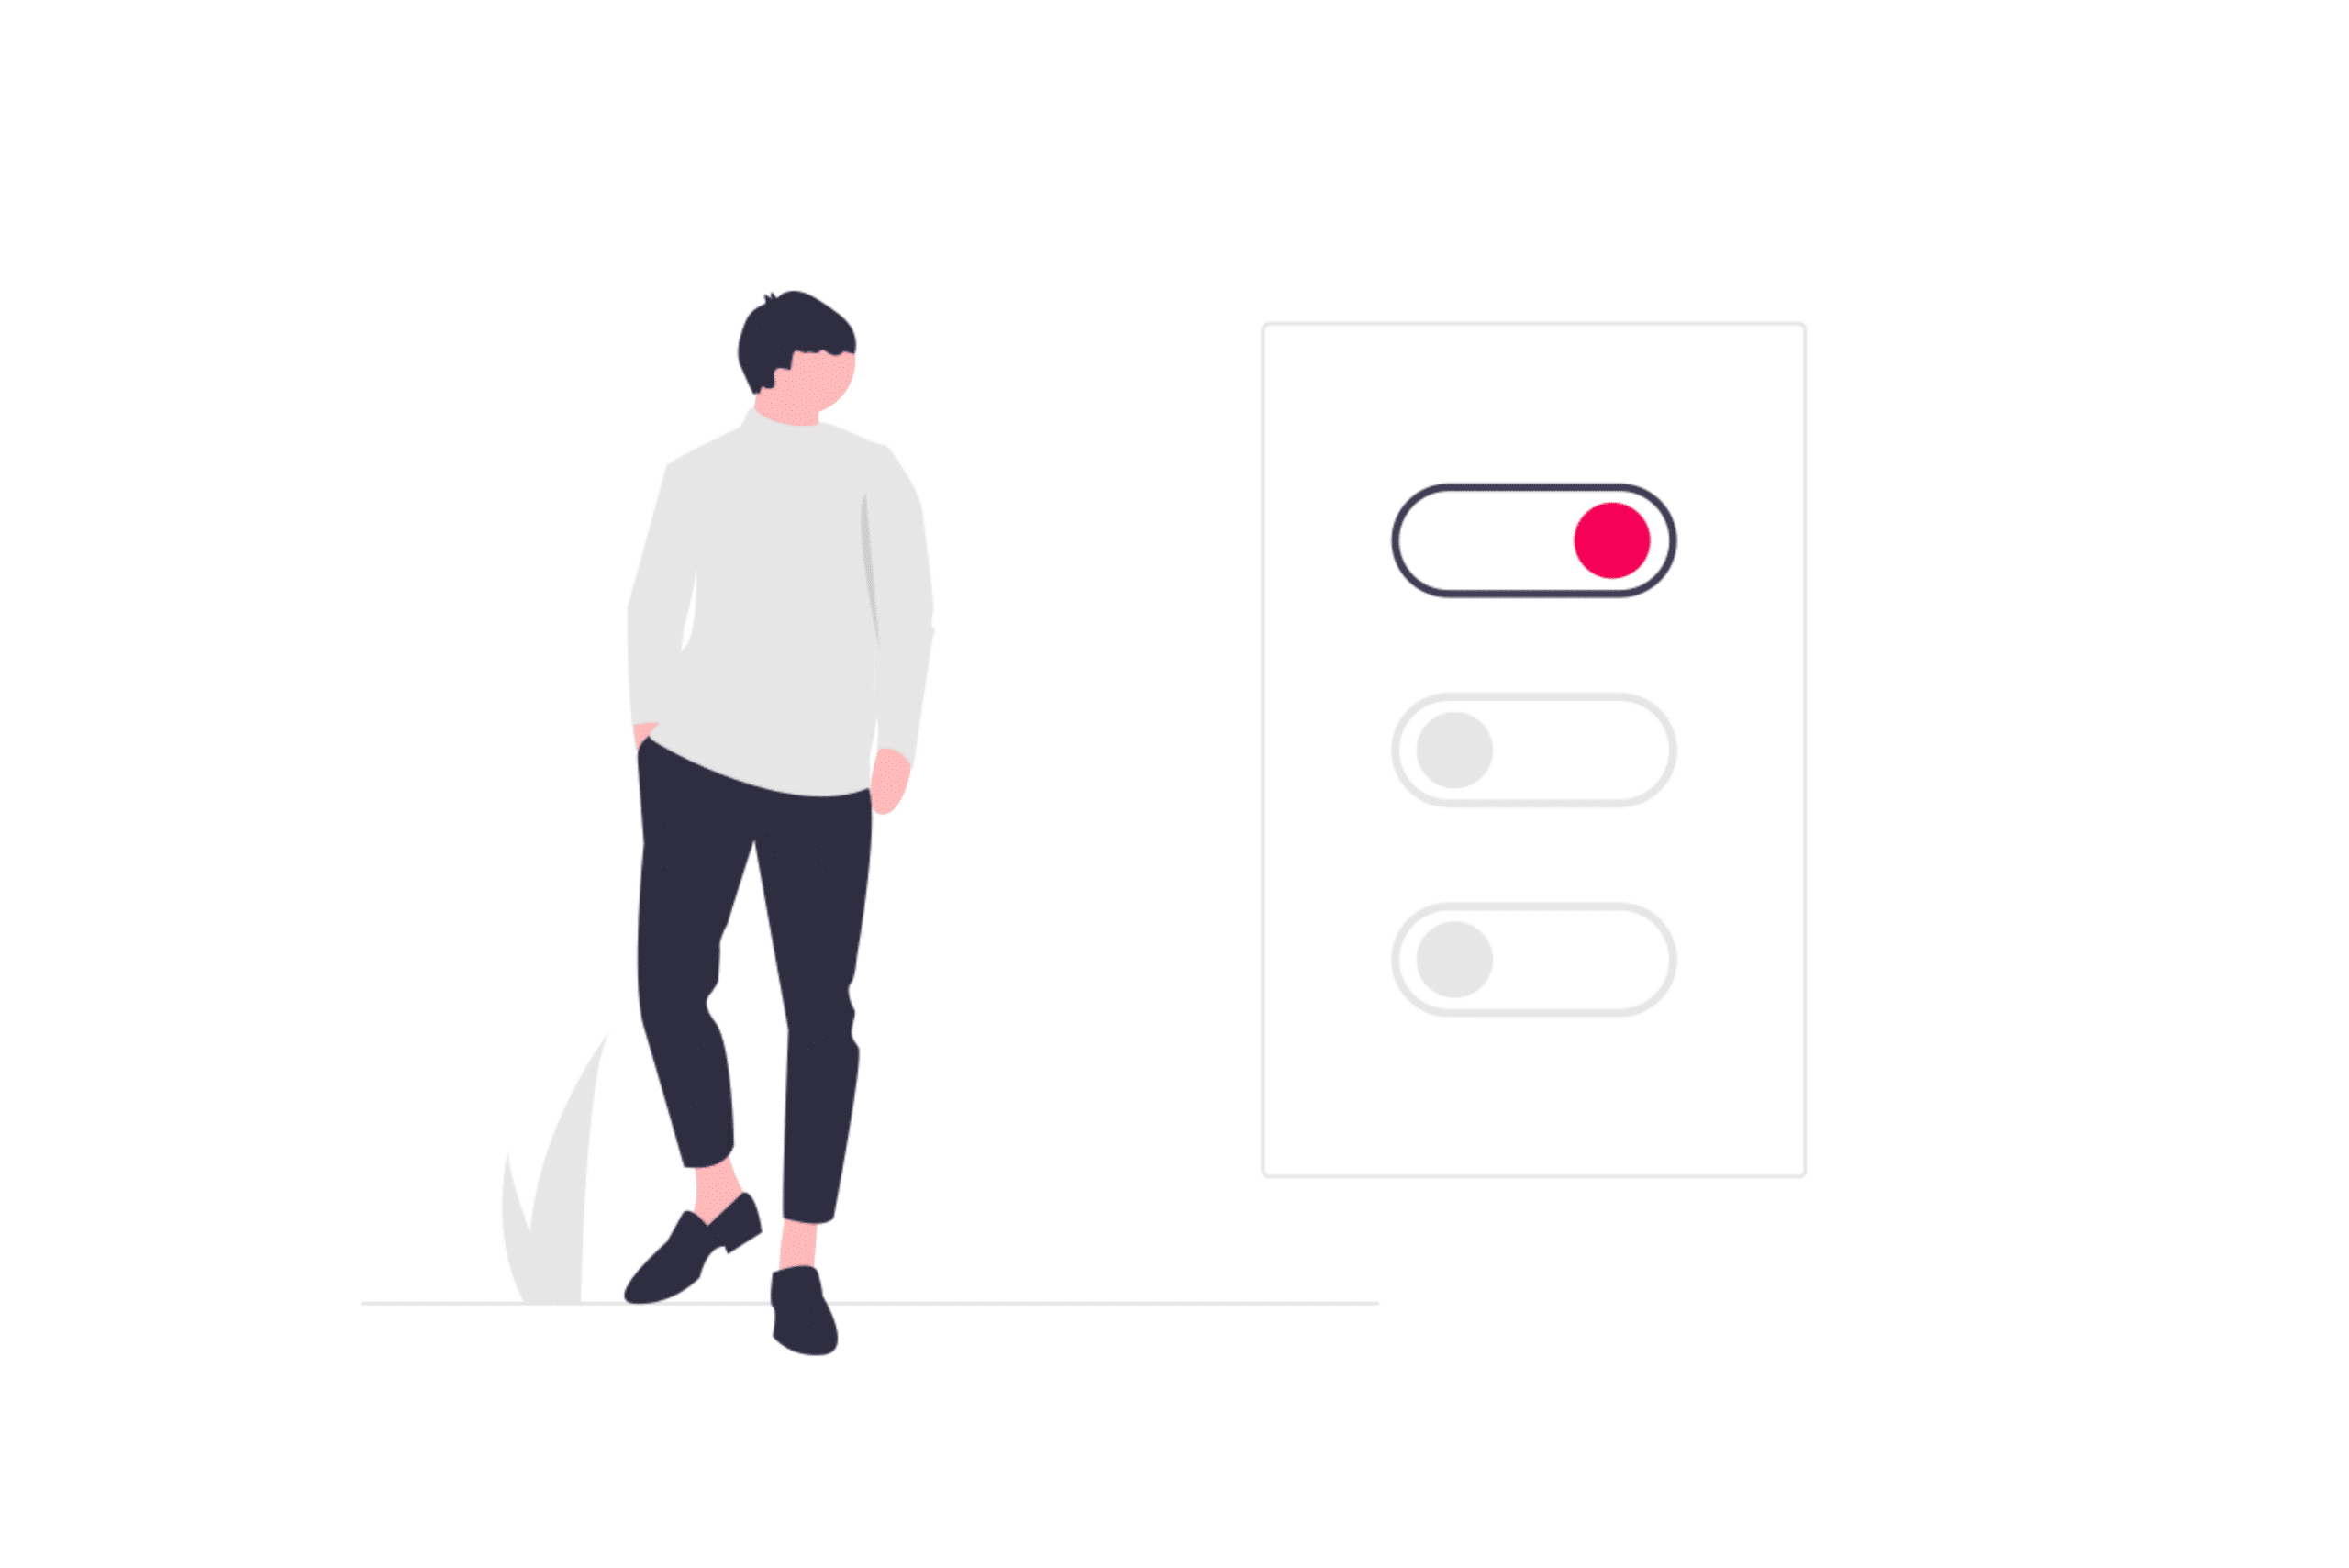 Illustration about making the switch for a better option